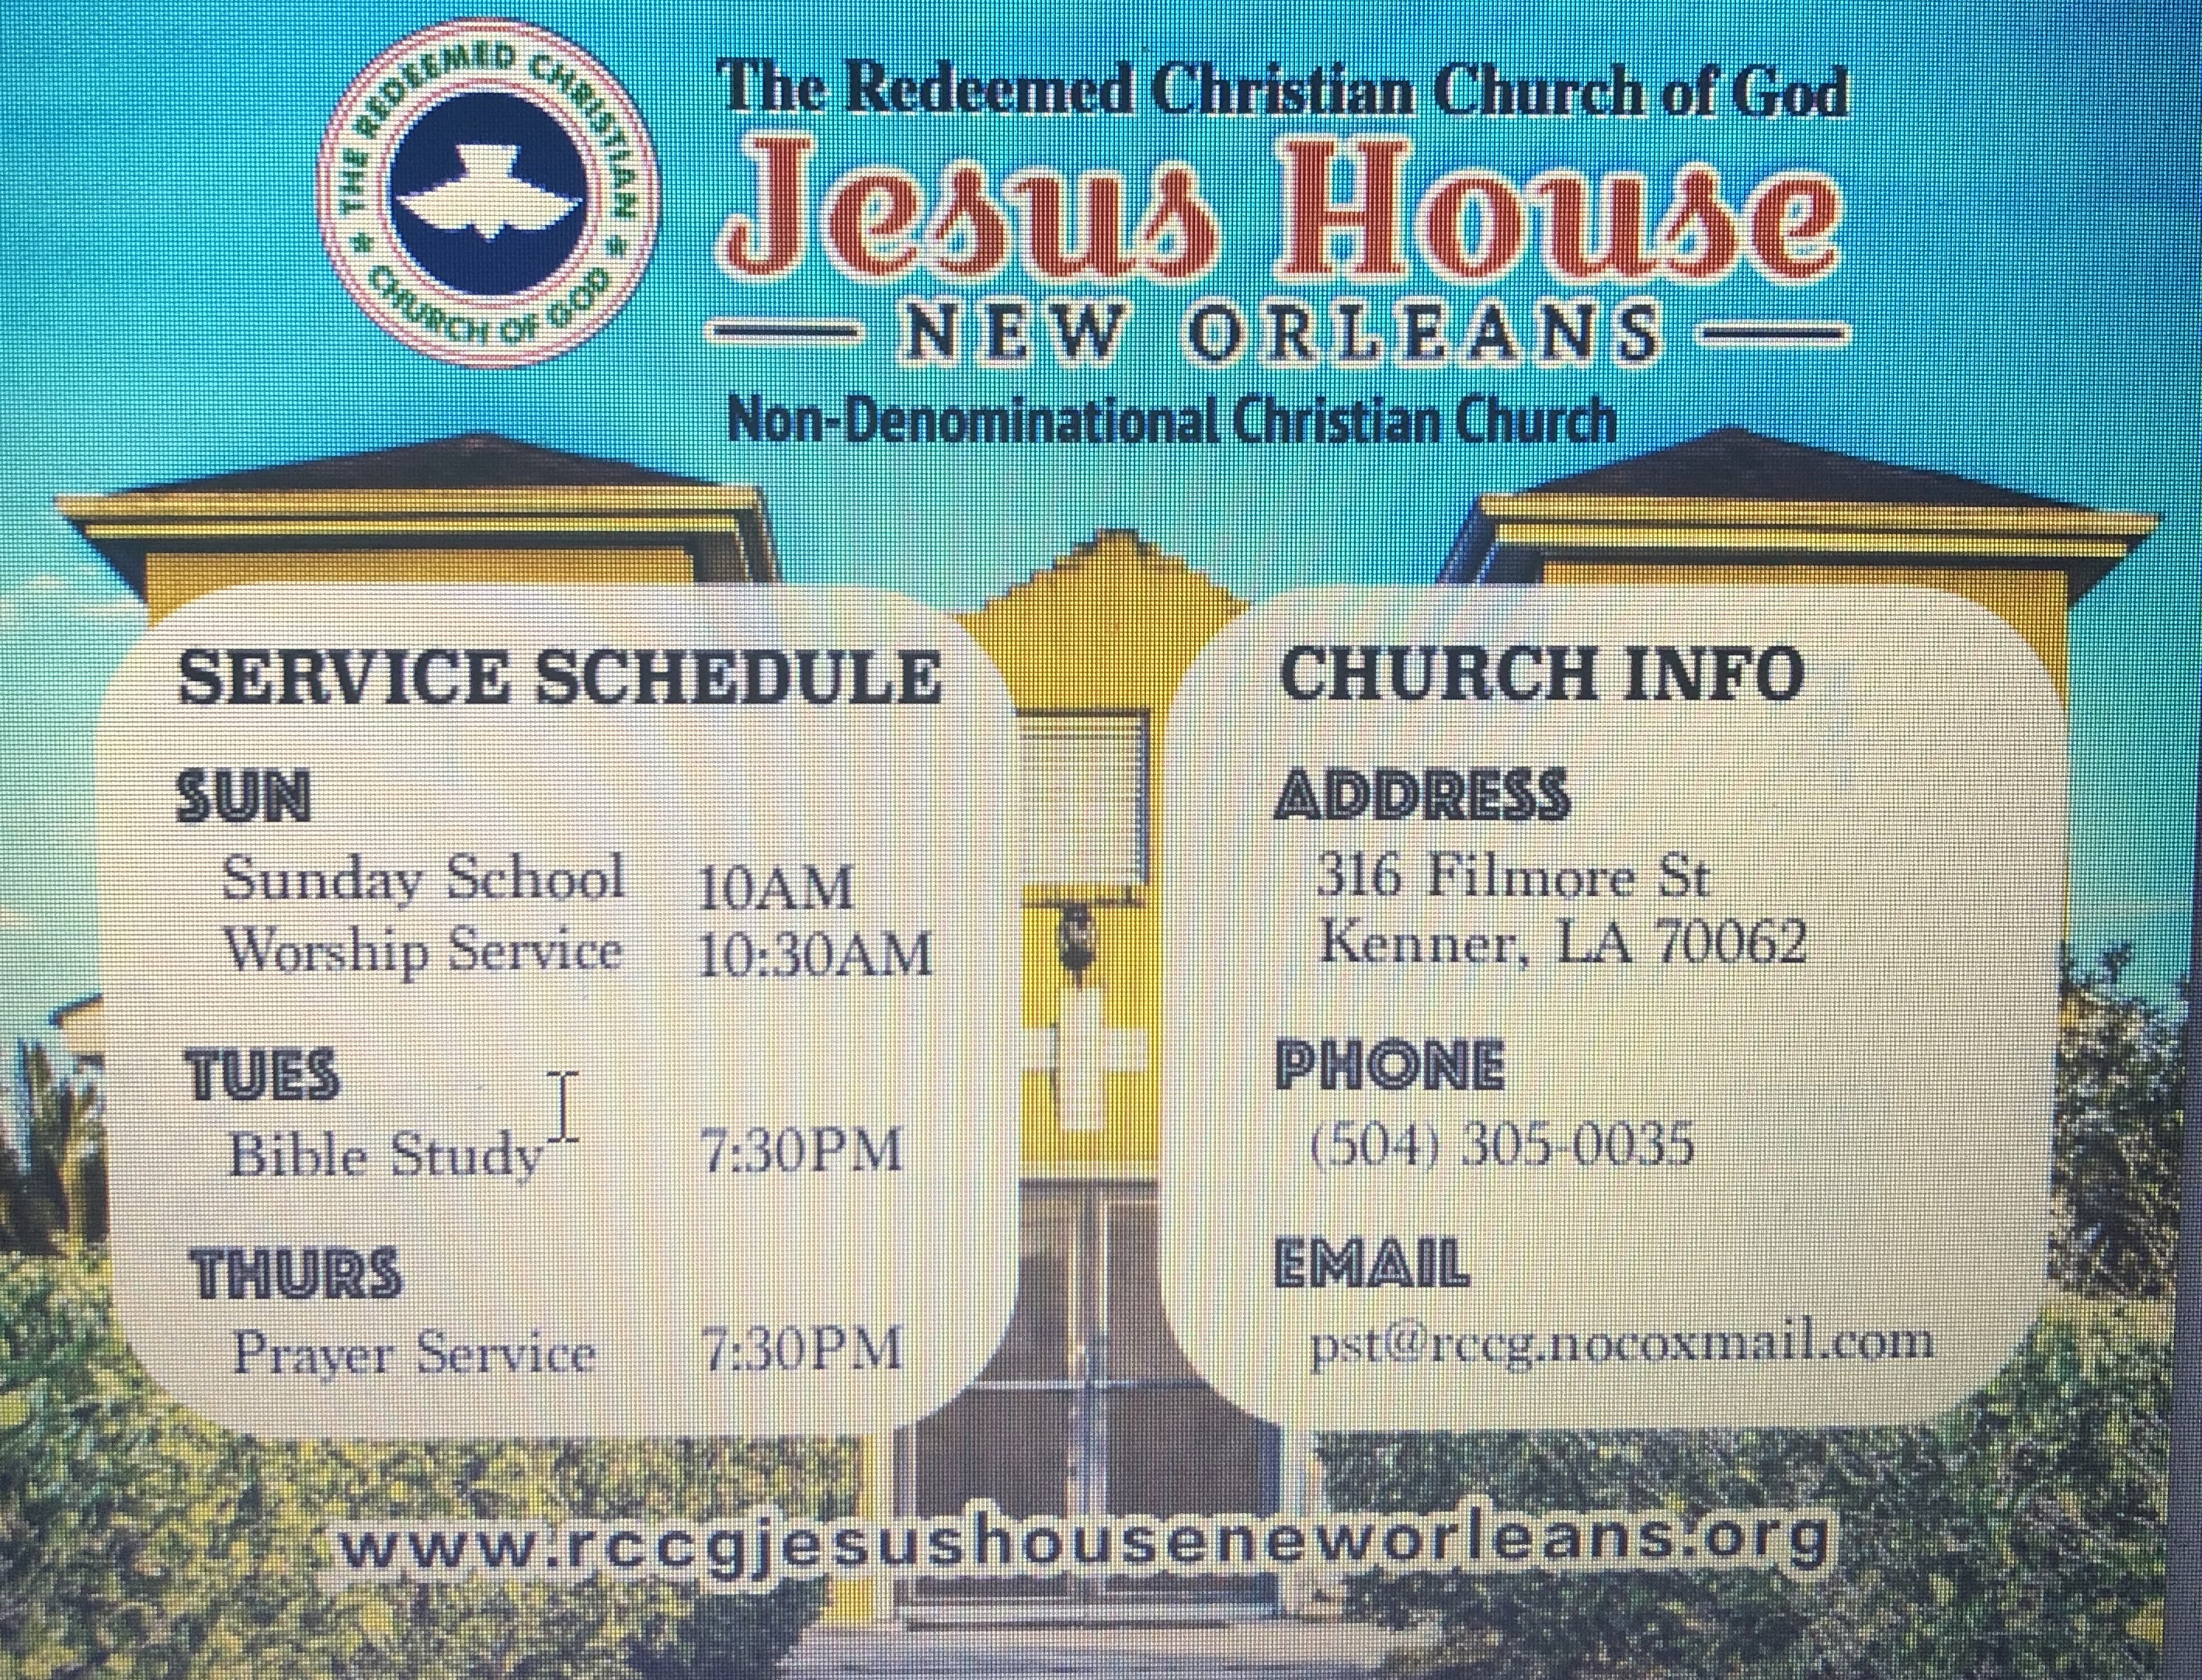 Jesus House New Orleans